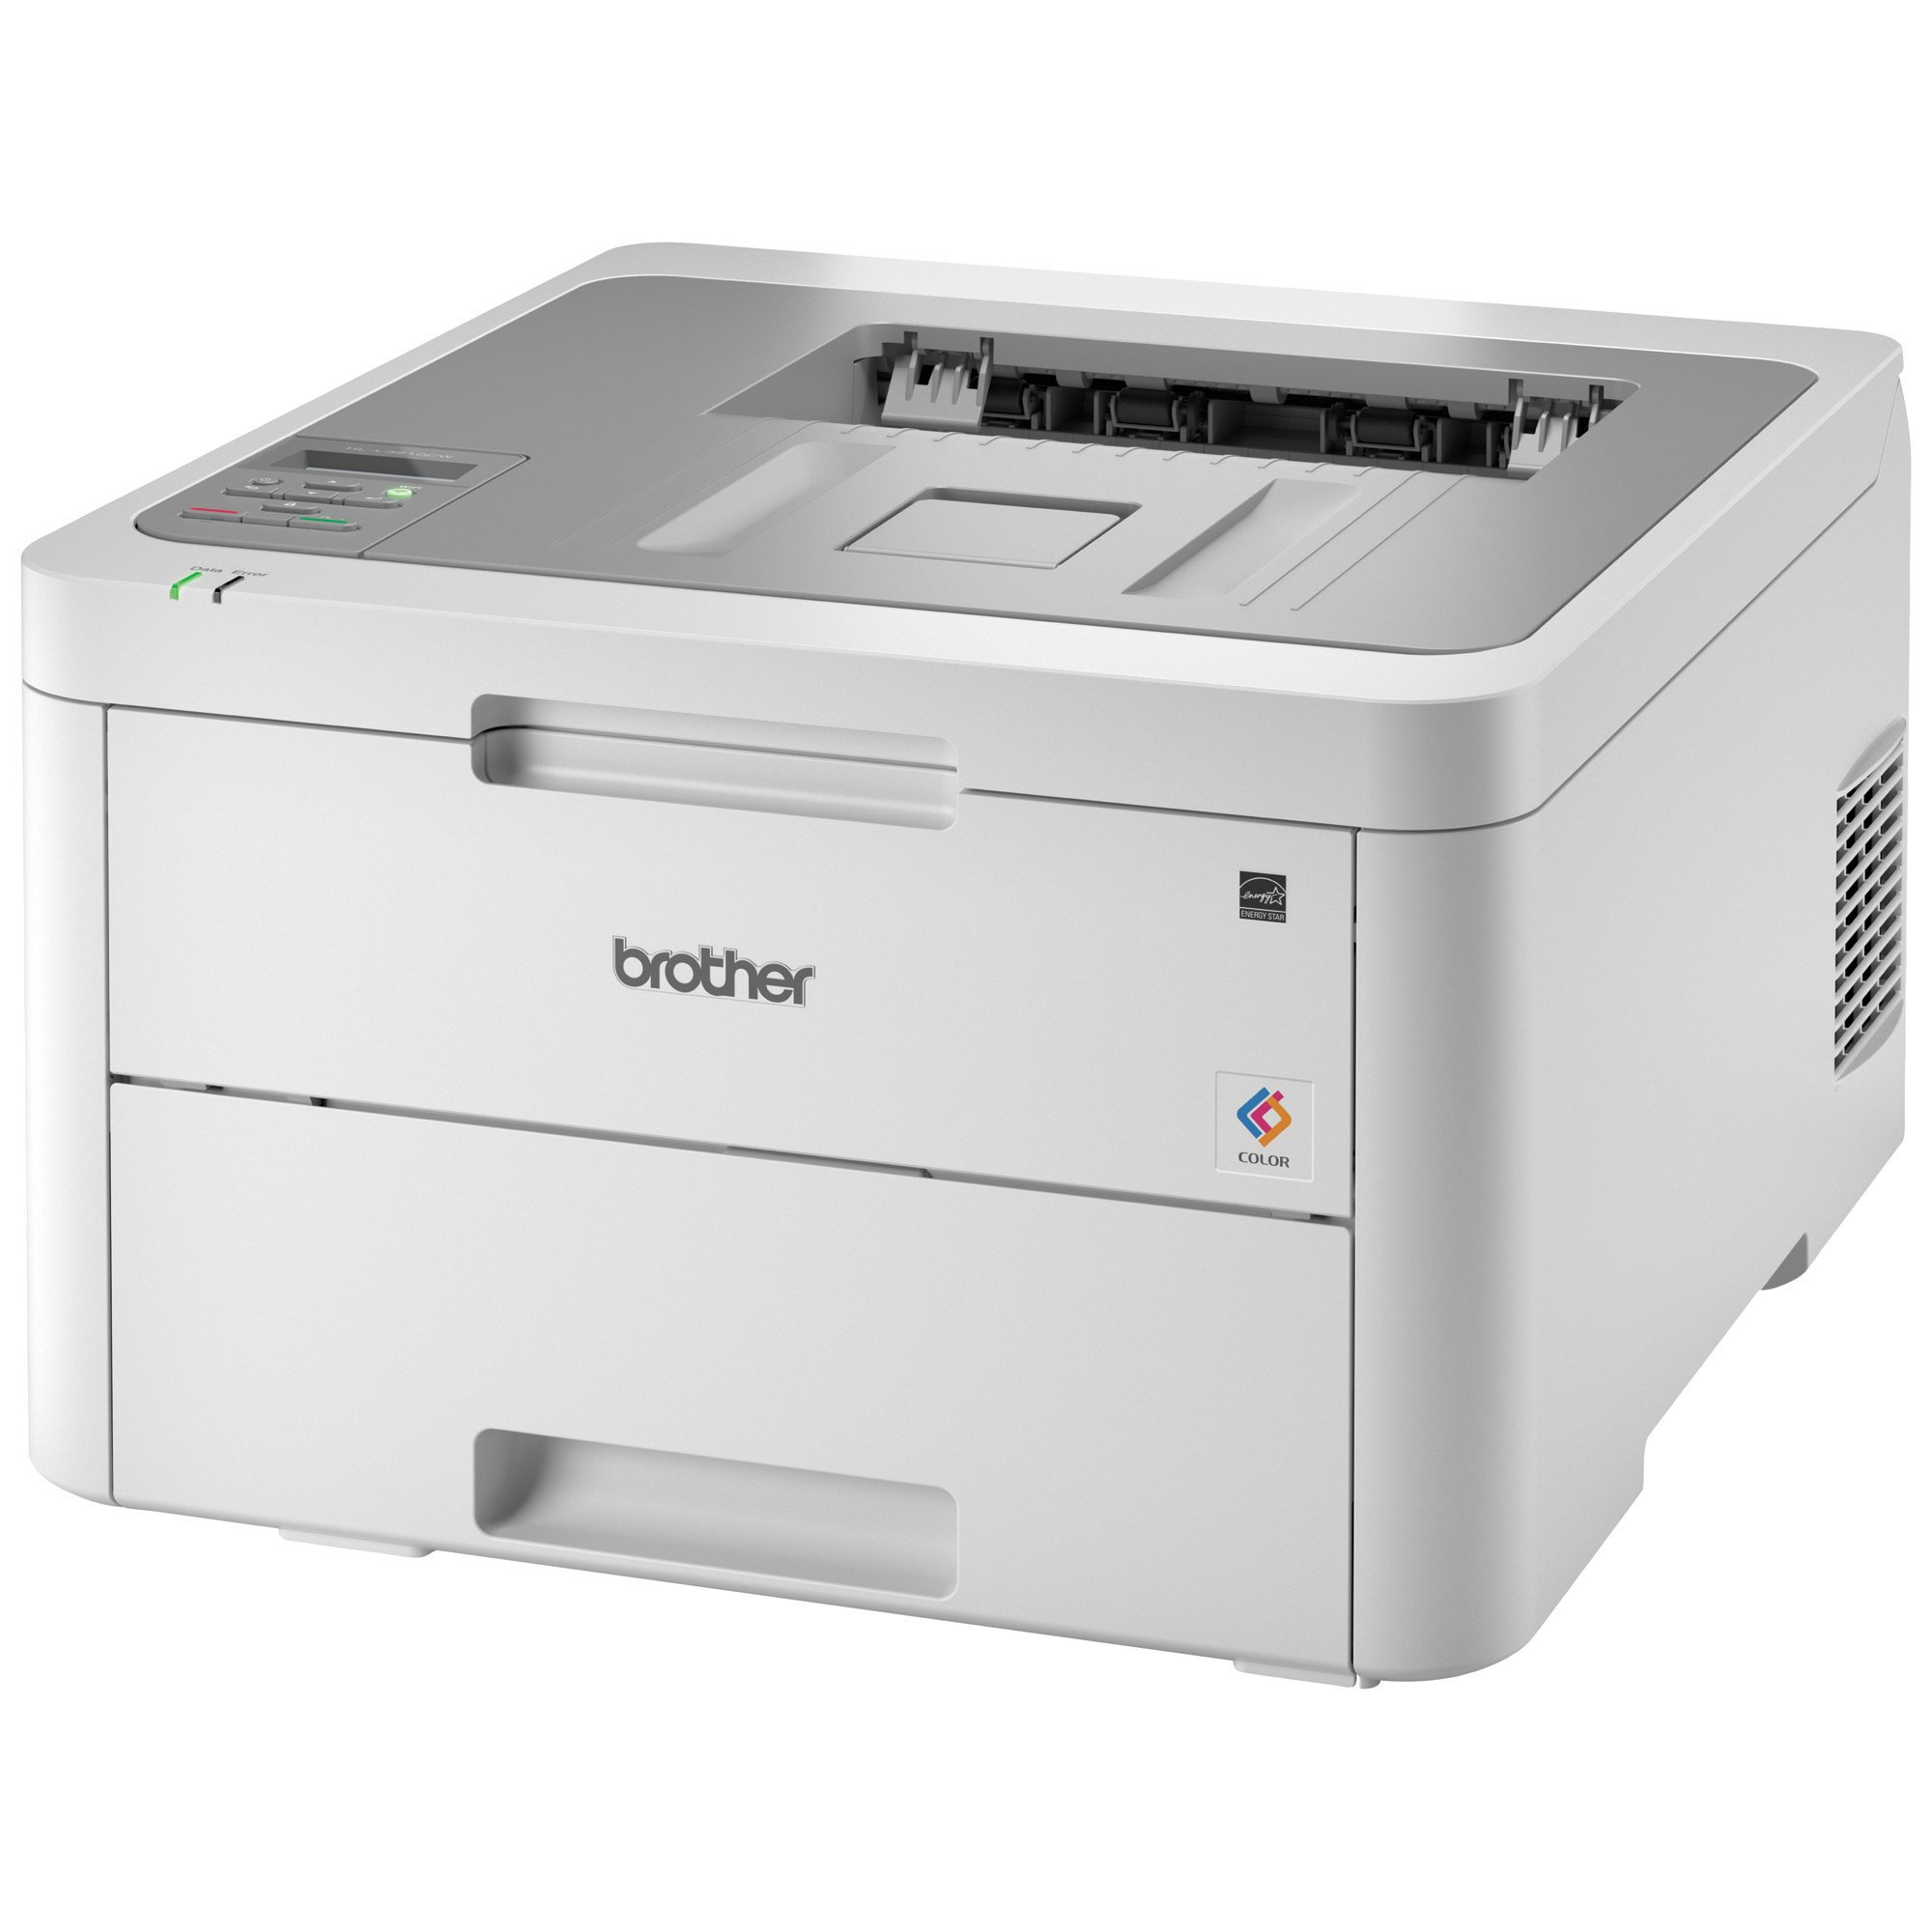 Brother HL-L3210CW Compact Digital Color Printer Providing Laser Printer Quality Results with Wireless, Amazon Dash Replenishment Enabled, White by Brother (Image #3)